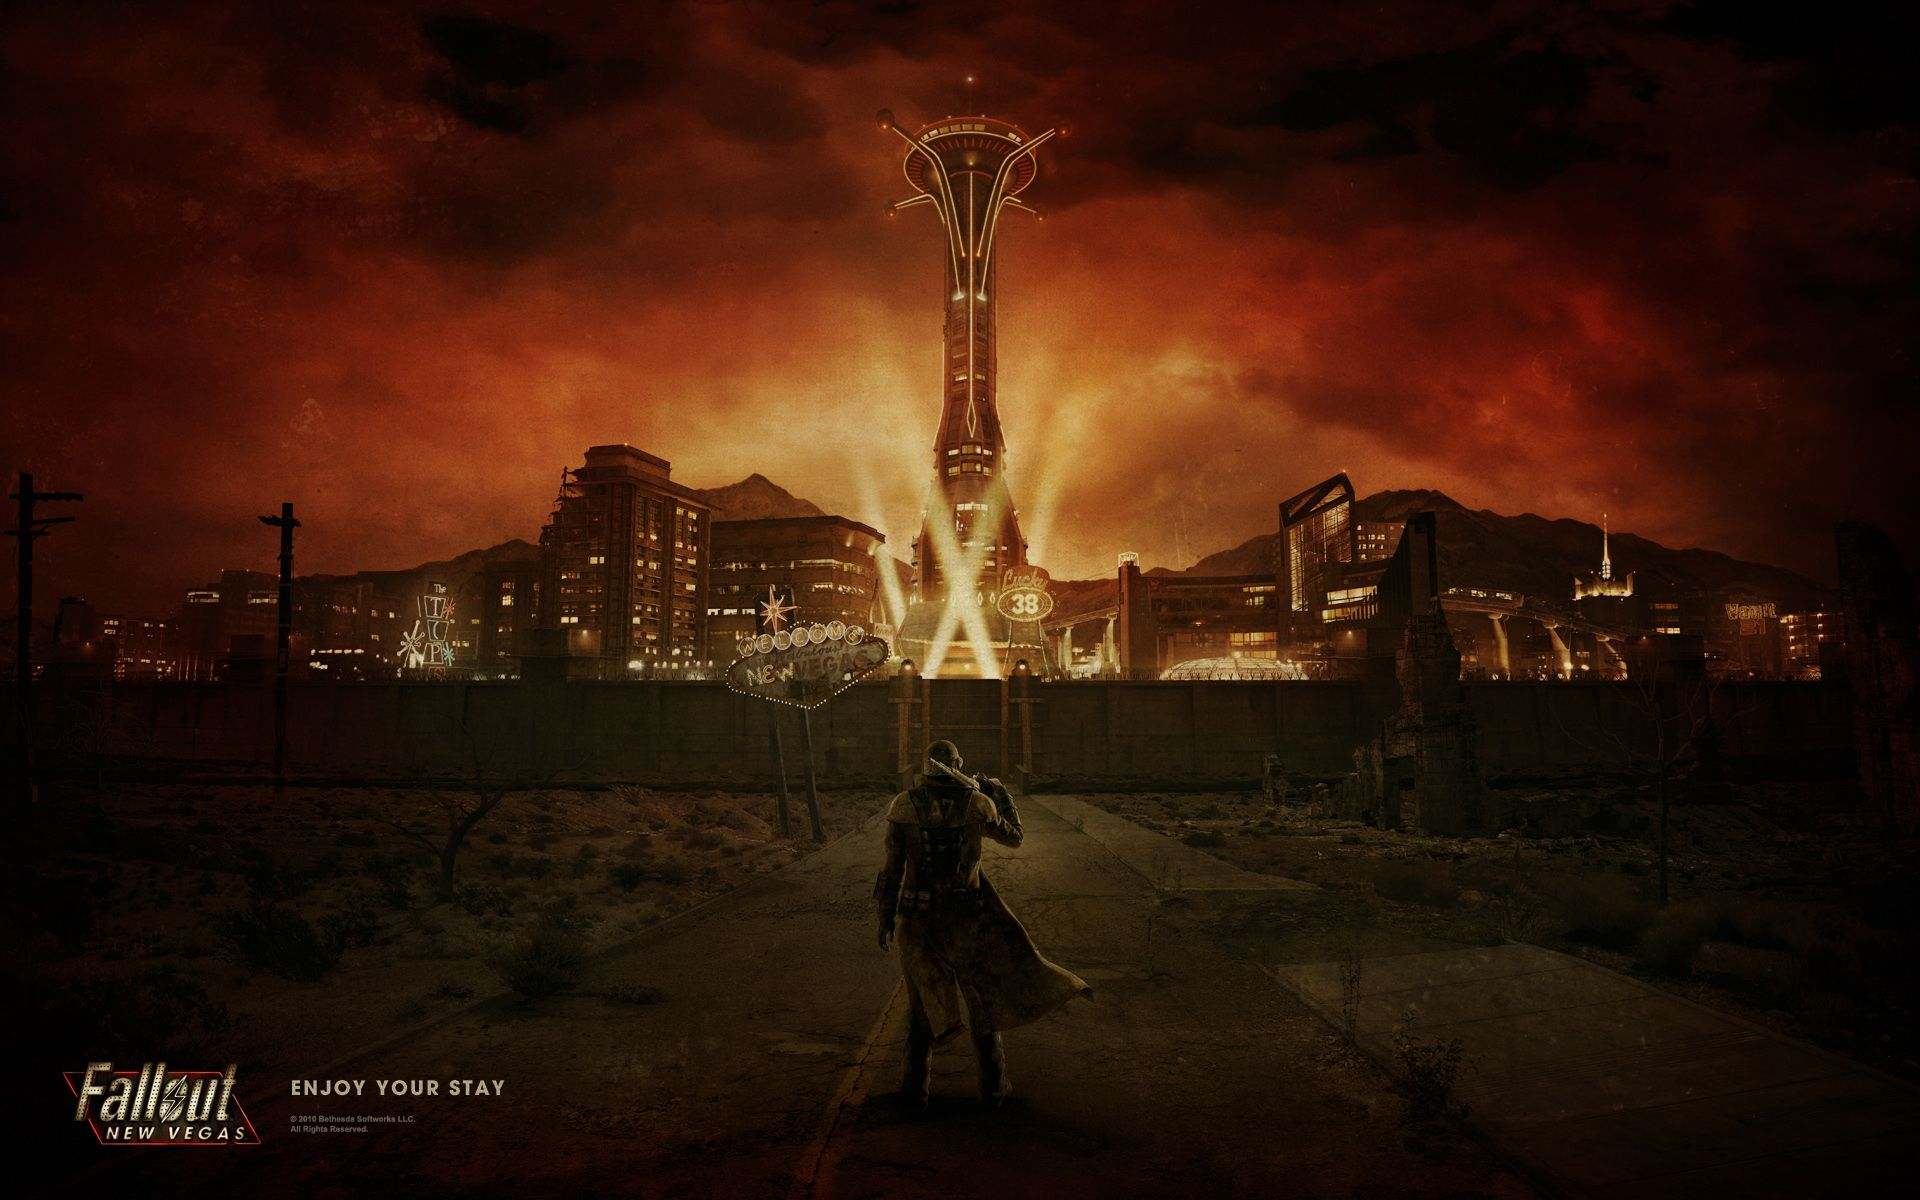 Fallout New Vegas Desktop Wallpaper